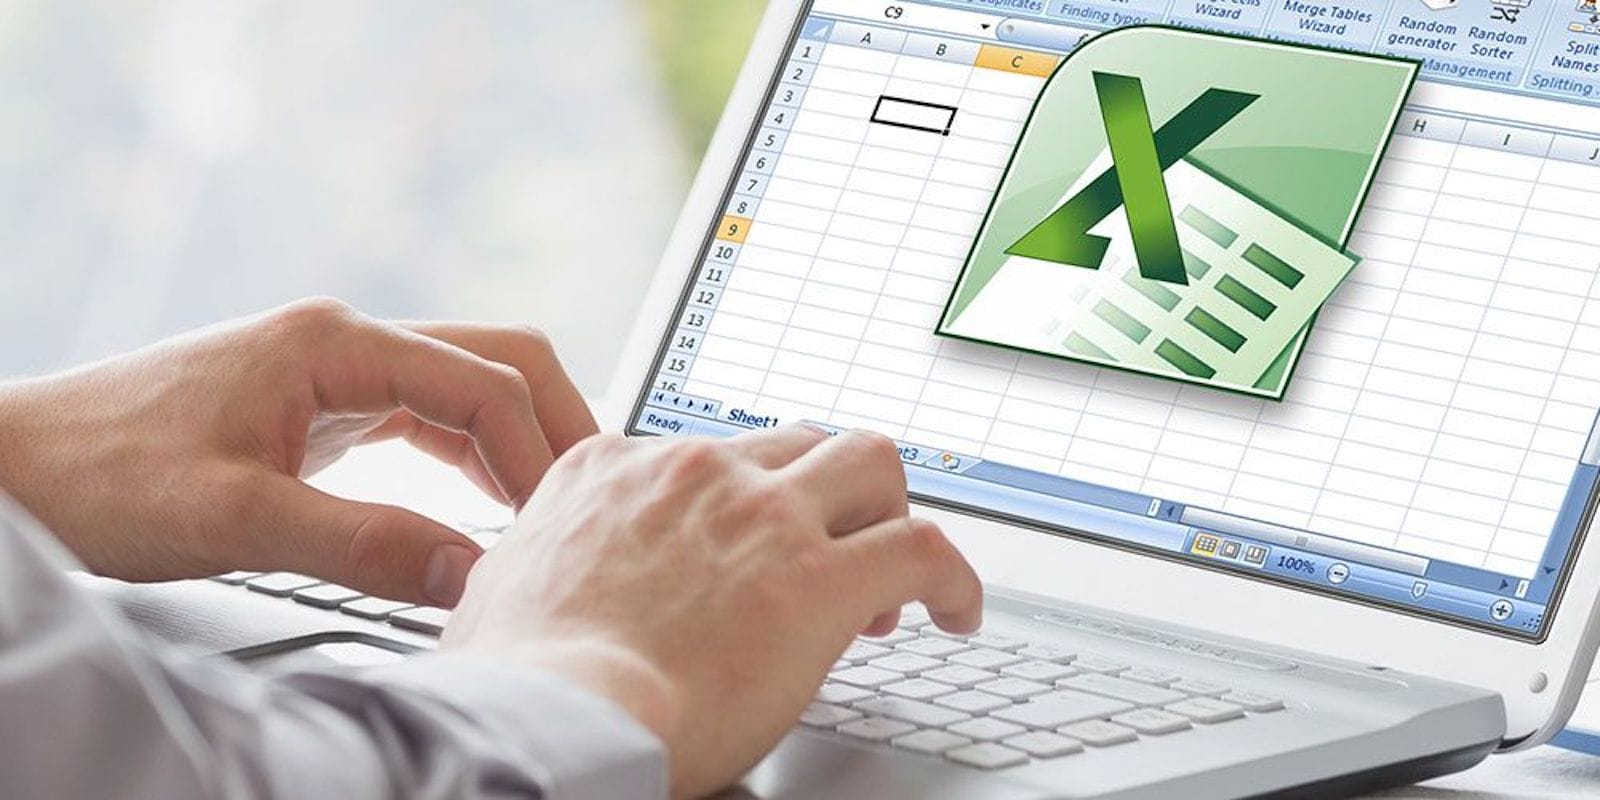 Master one of the most essential apps of the modern workplace, Microsoft Excel.